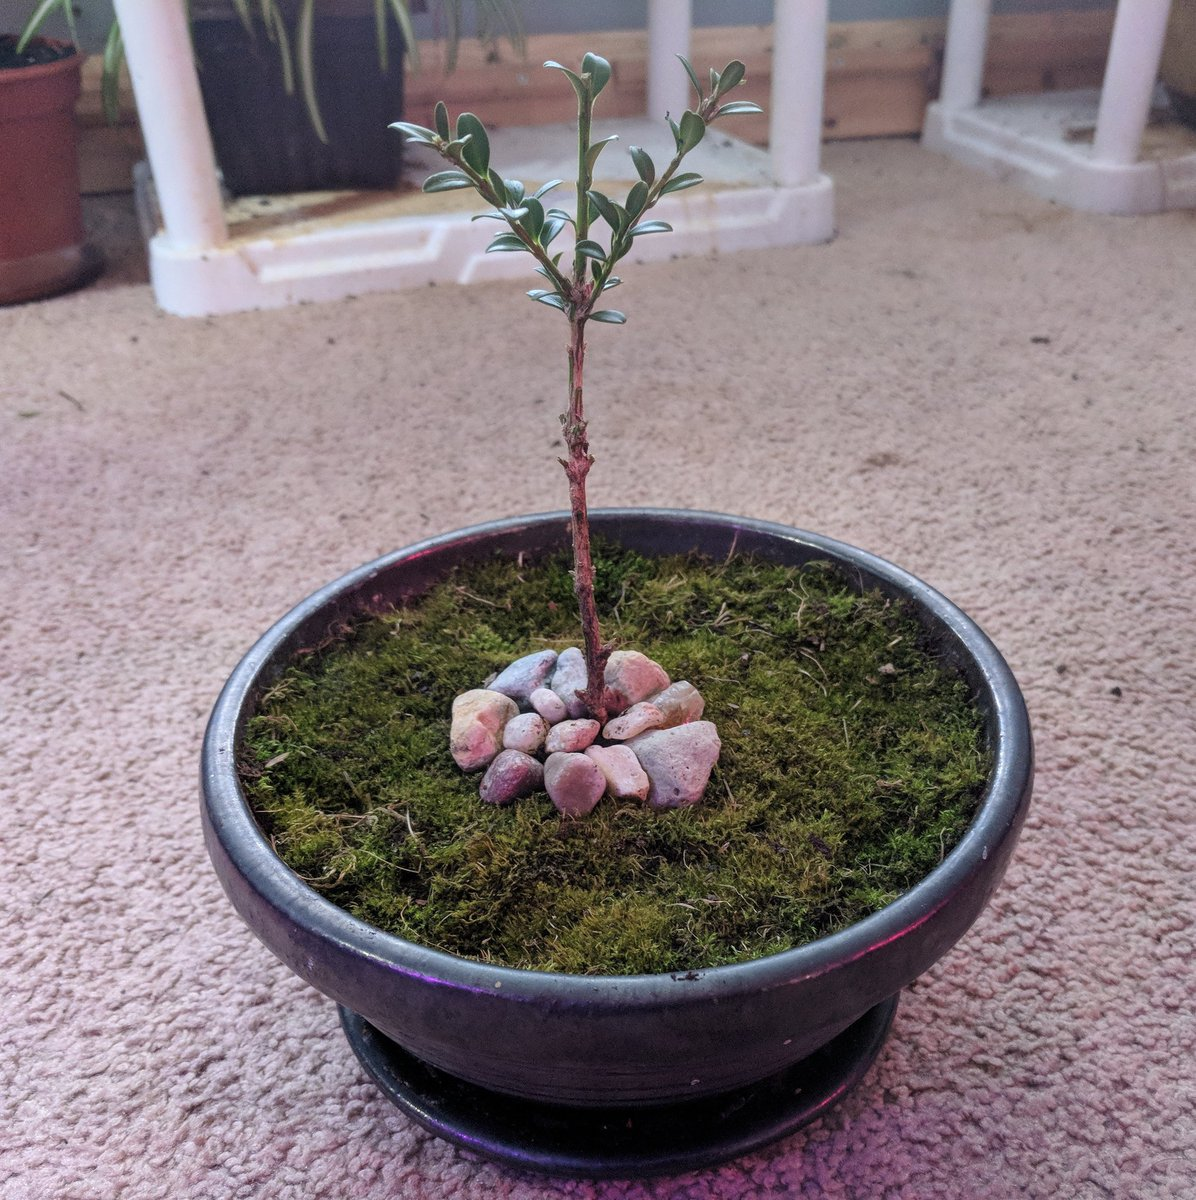 Andrew Natureman On Twitter Boxwood Bonsai I Pruned This Tiny Boxwood Plant Into A Mini Tree With Rocks To Represent Mulch And Live Garden Moss To Represent The Lawn Bonsai Perennial Evergreen